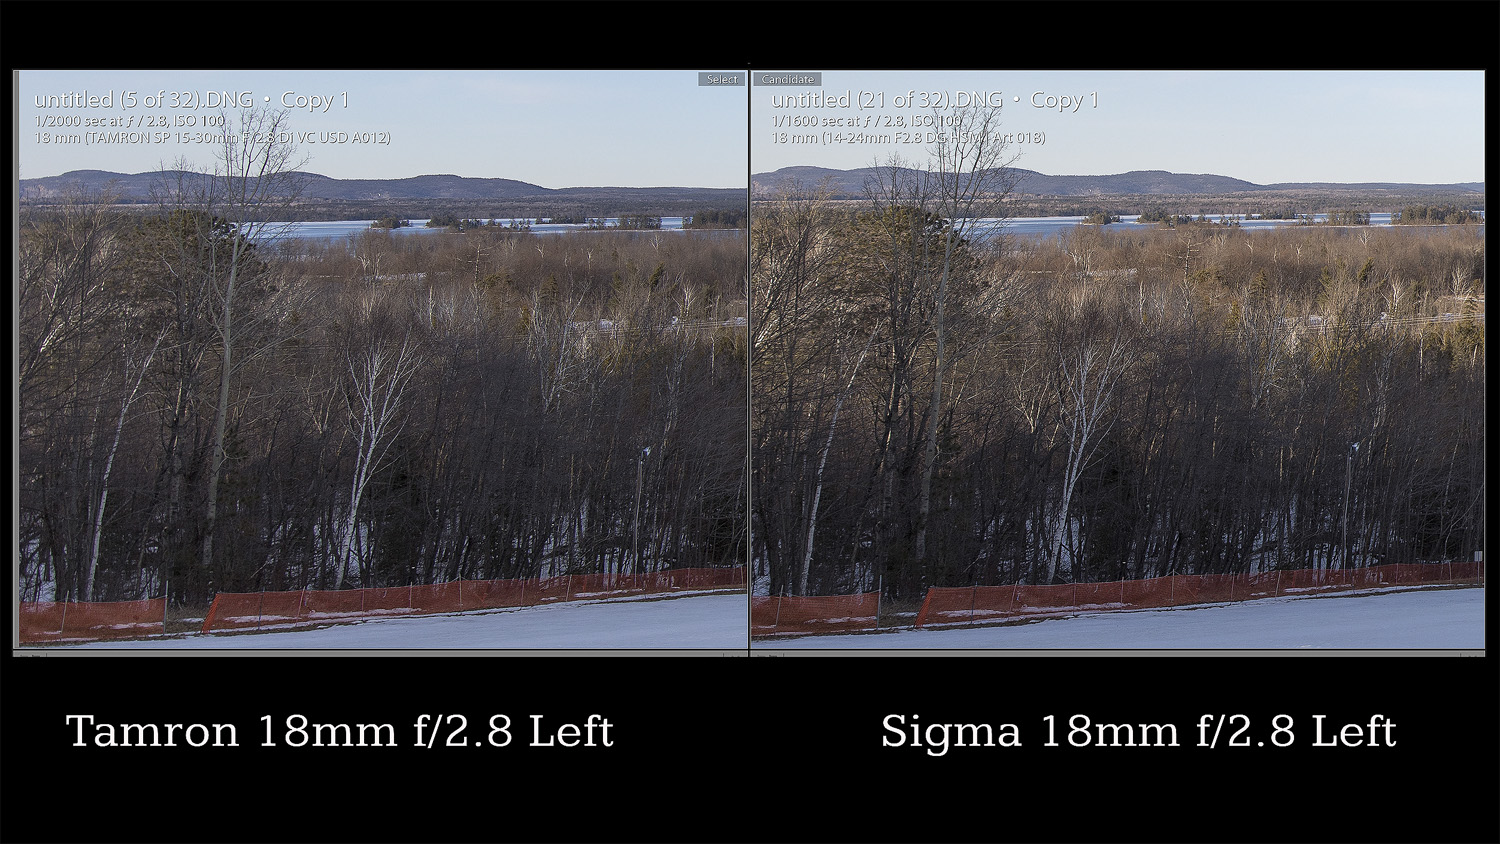 Tamron Comparison 18mm Edge